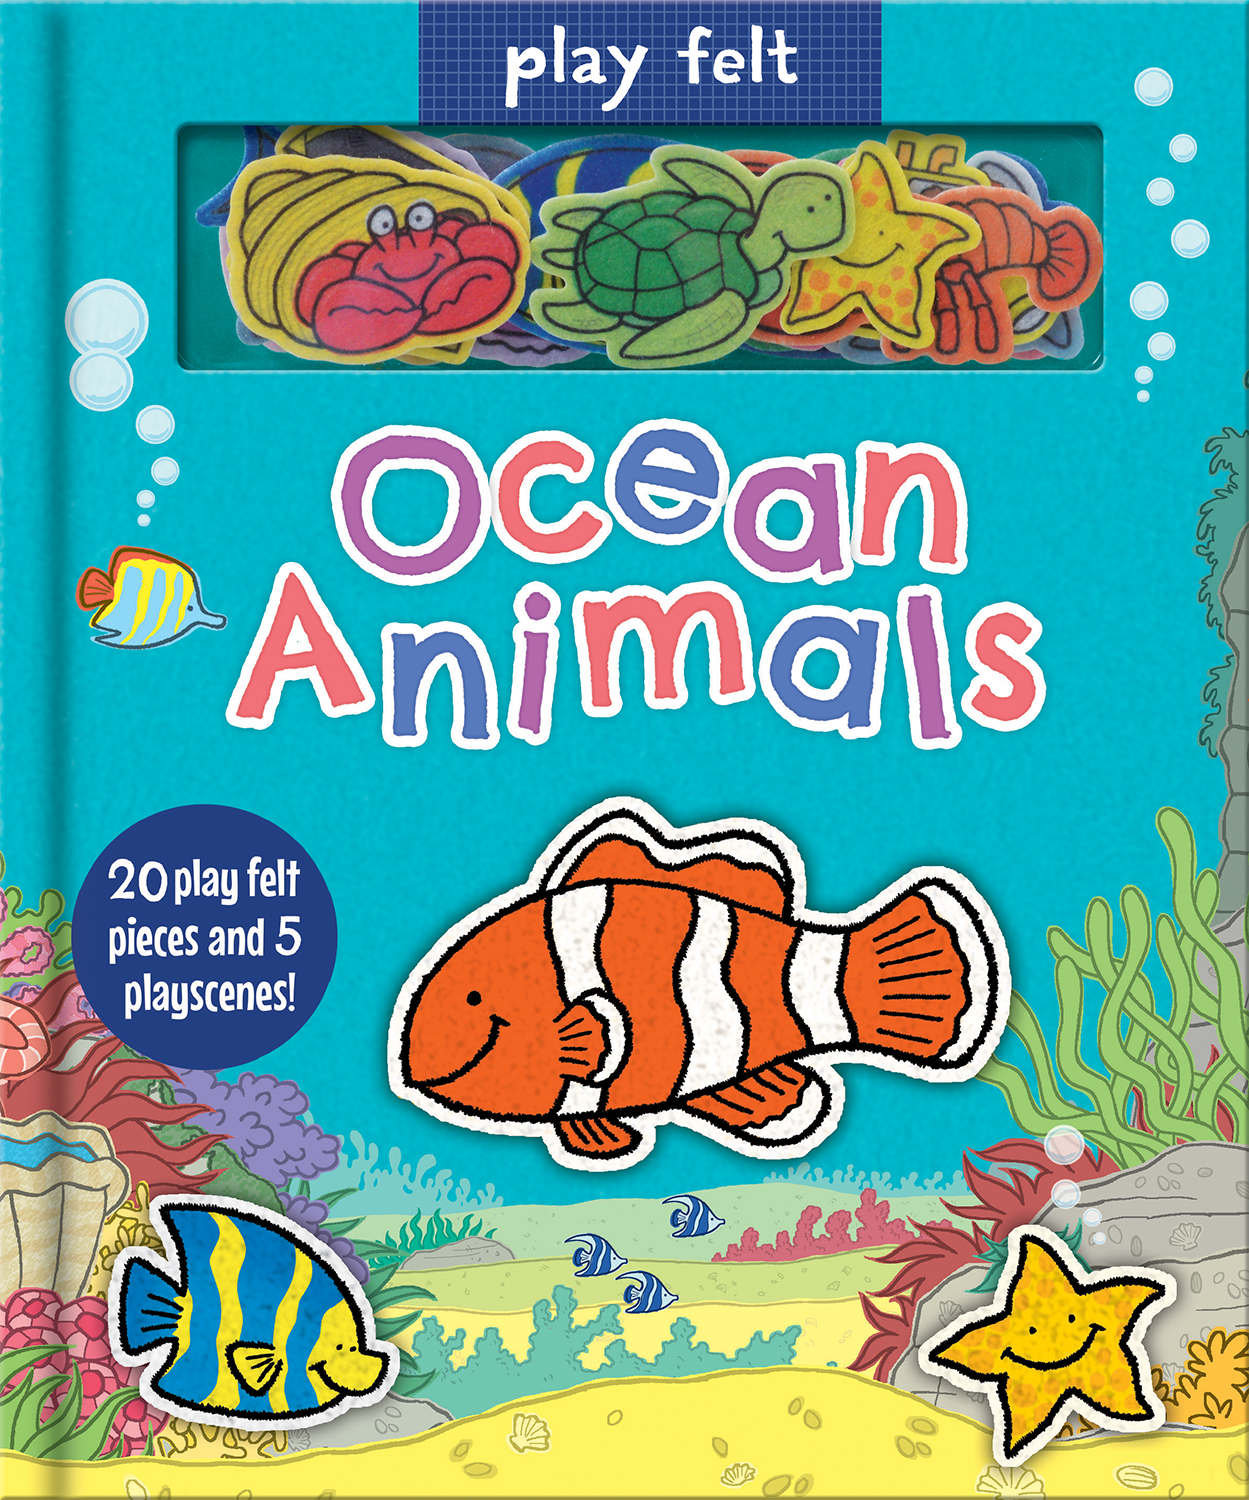 PLAY FELT OCEAN ANIMALS